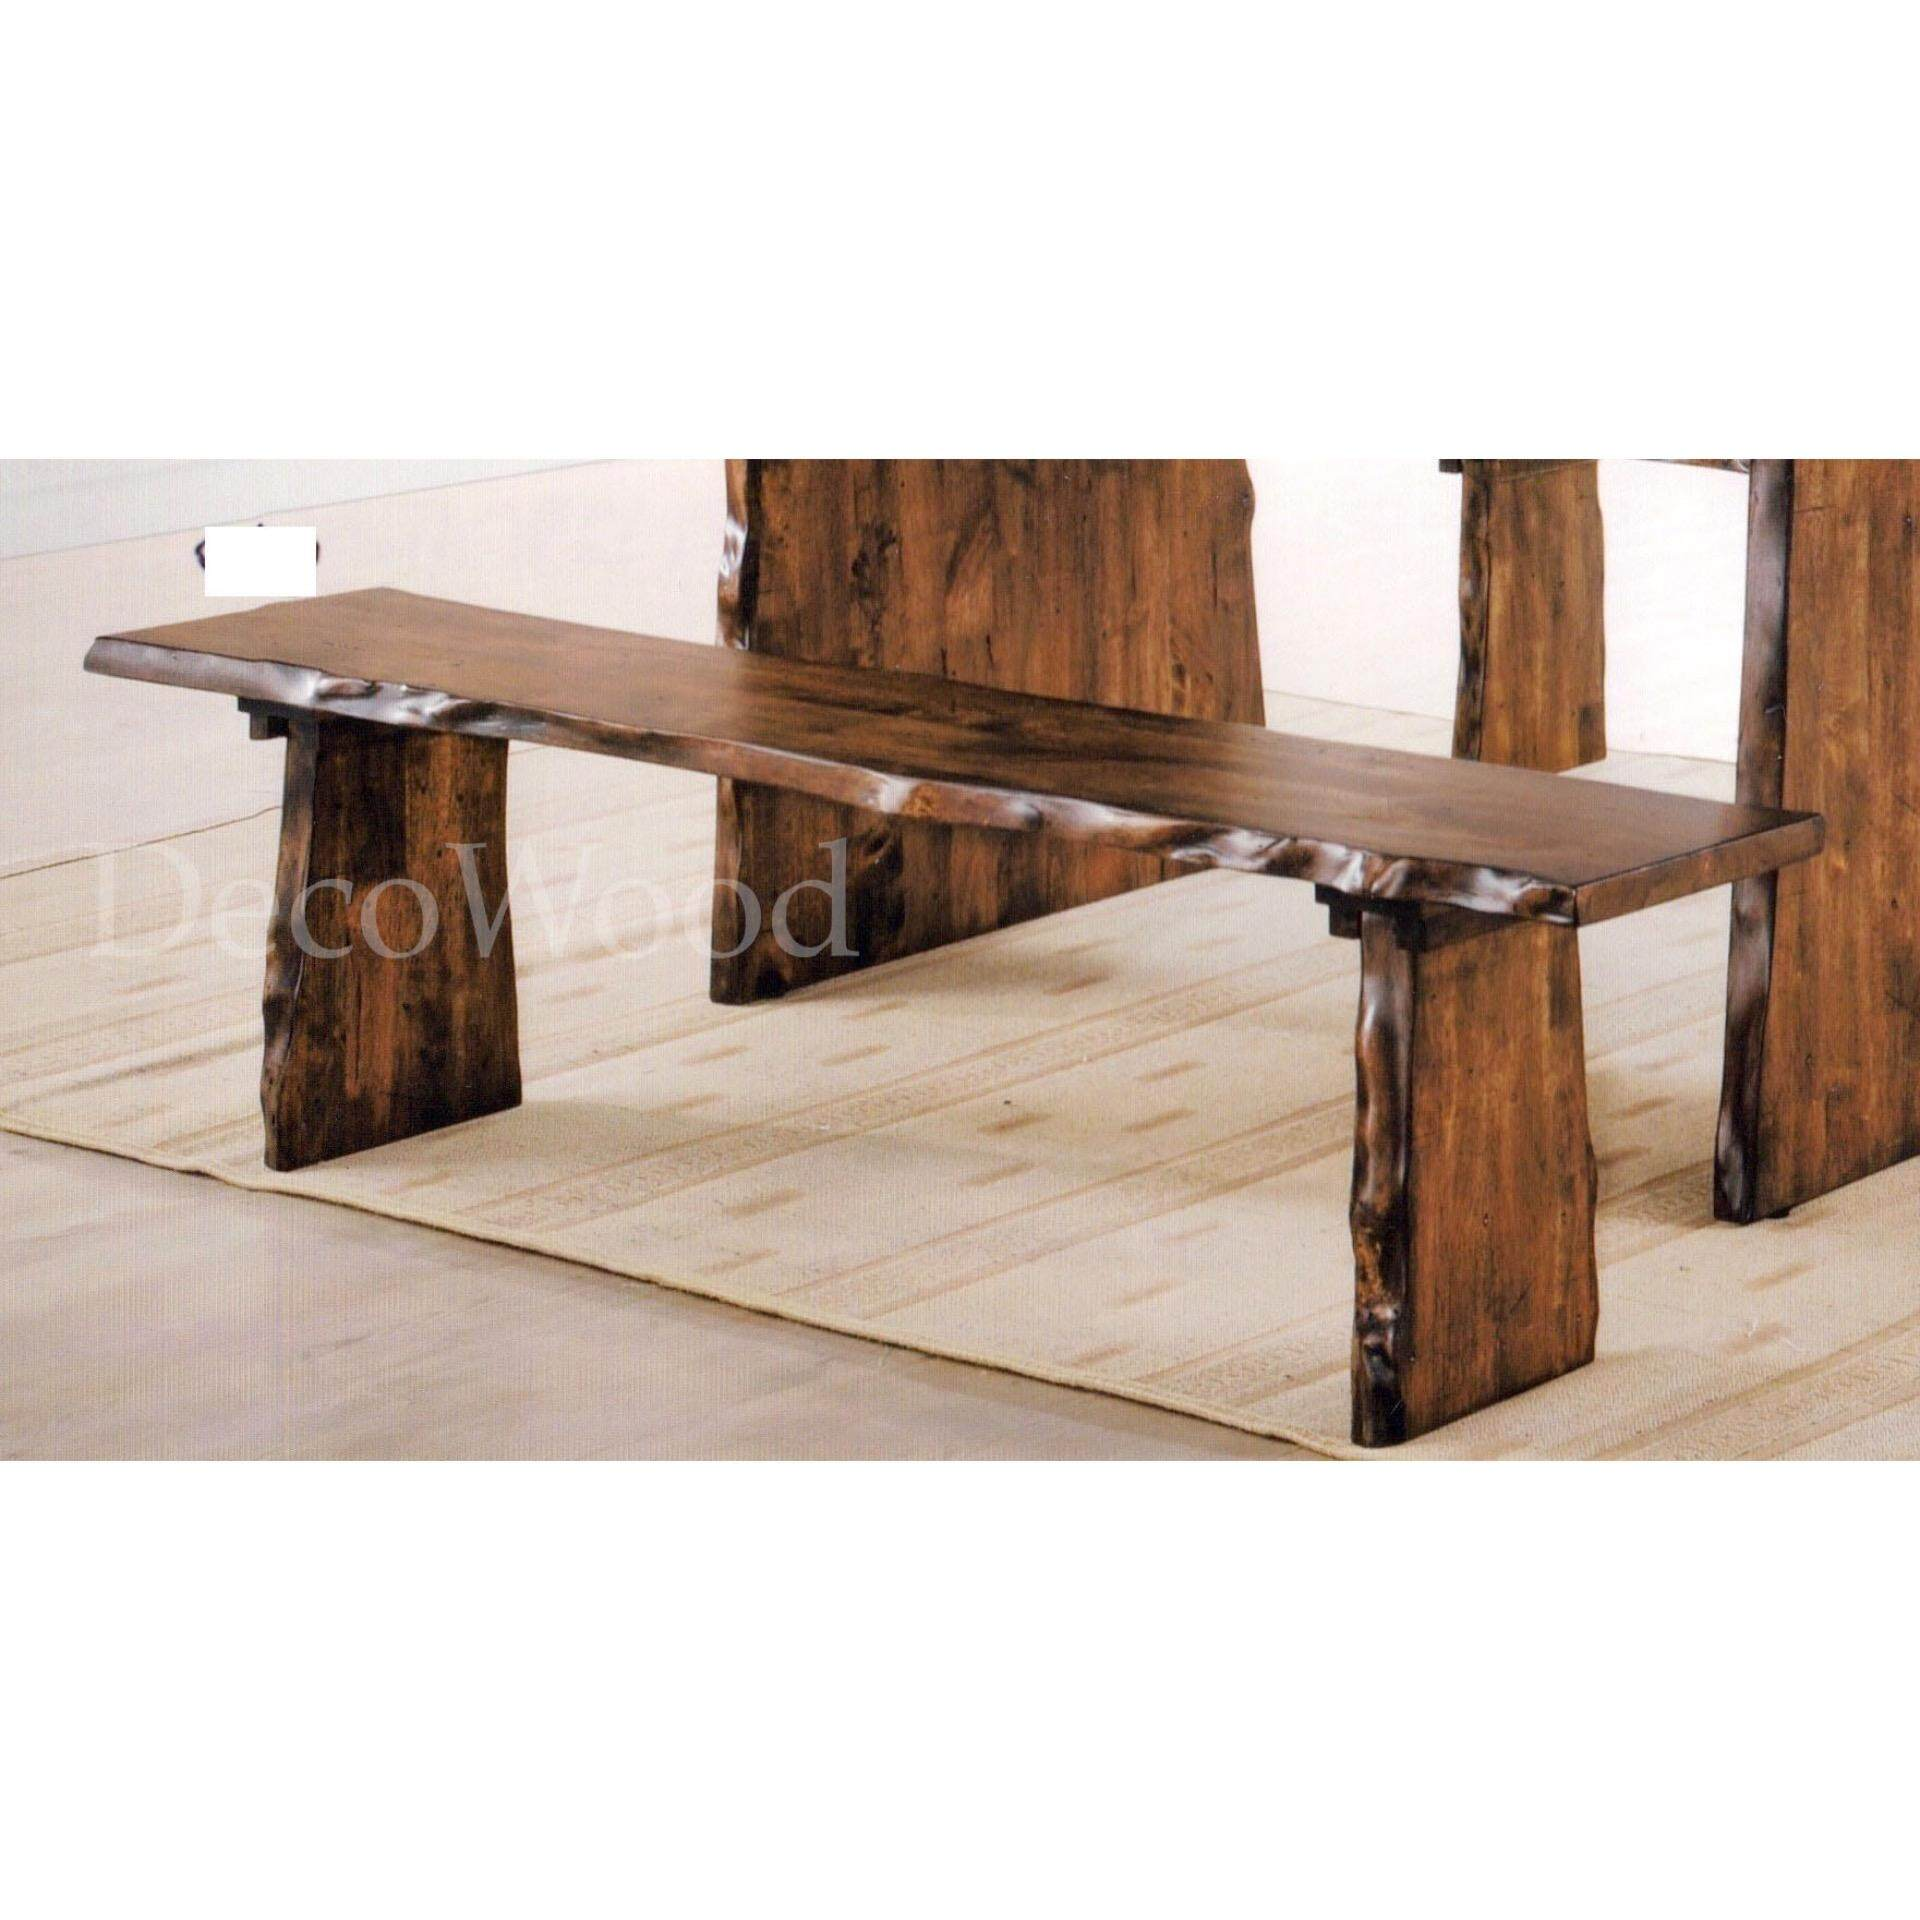 Fully Solid Wood Outdoor Garden Long Bench (Oak Colour) Pre Order 1 Week L1500MM X W450MM X H400MM